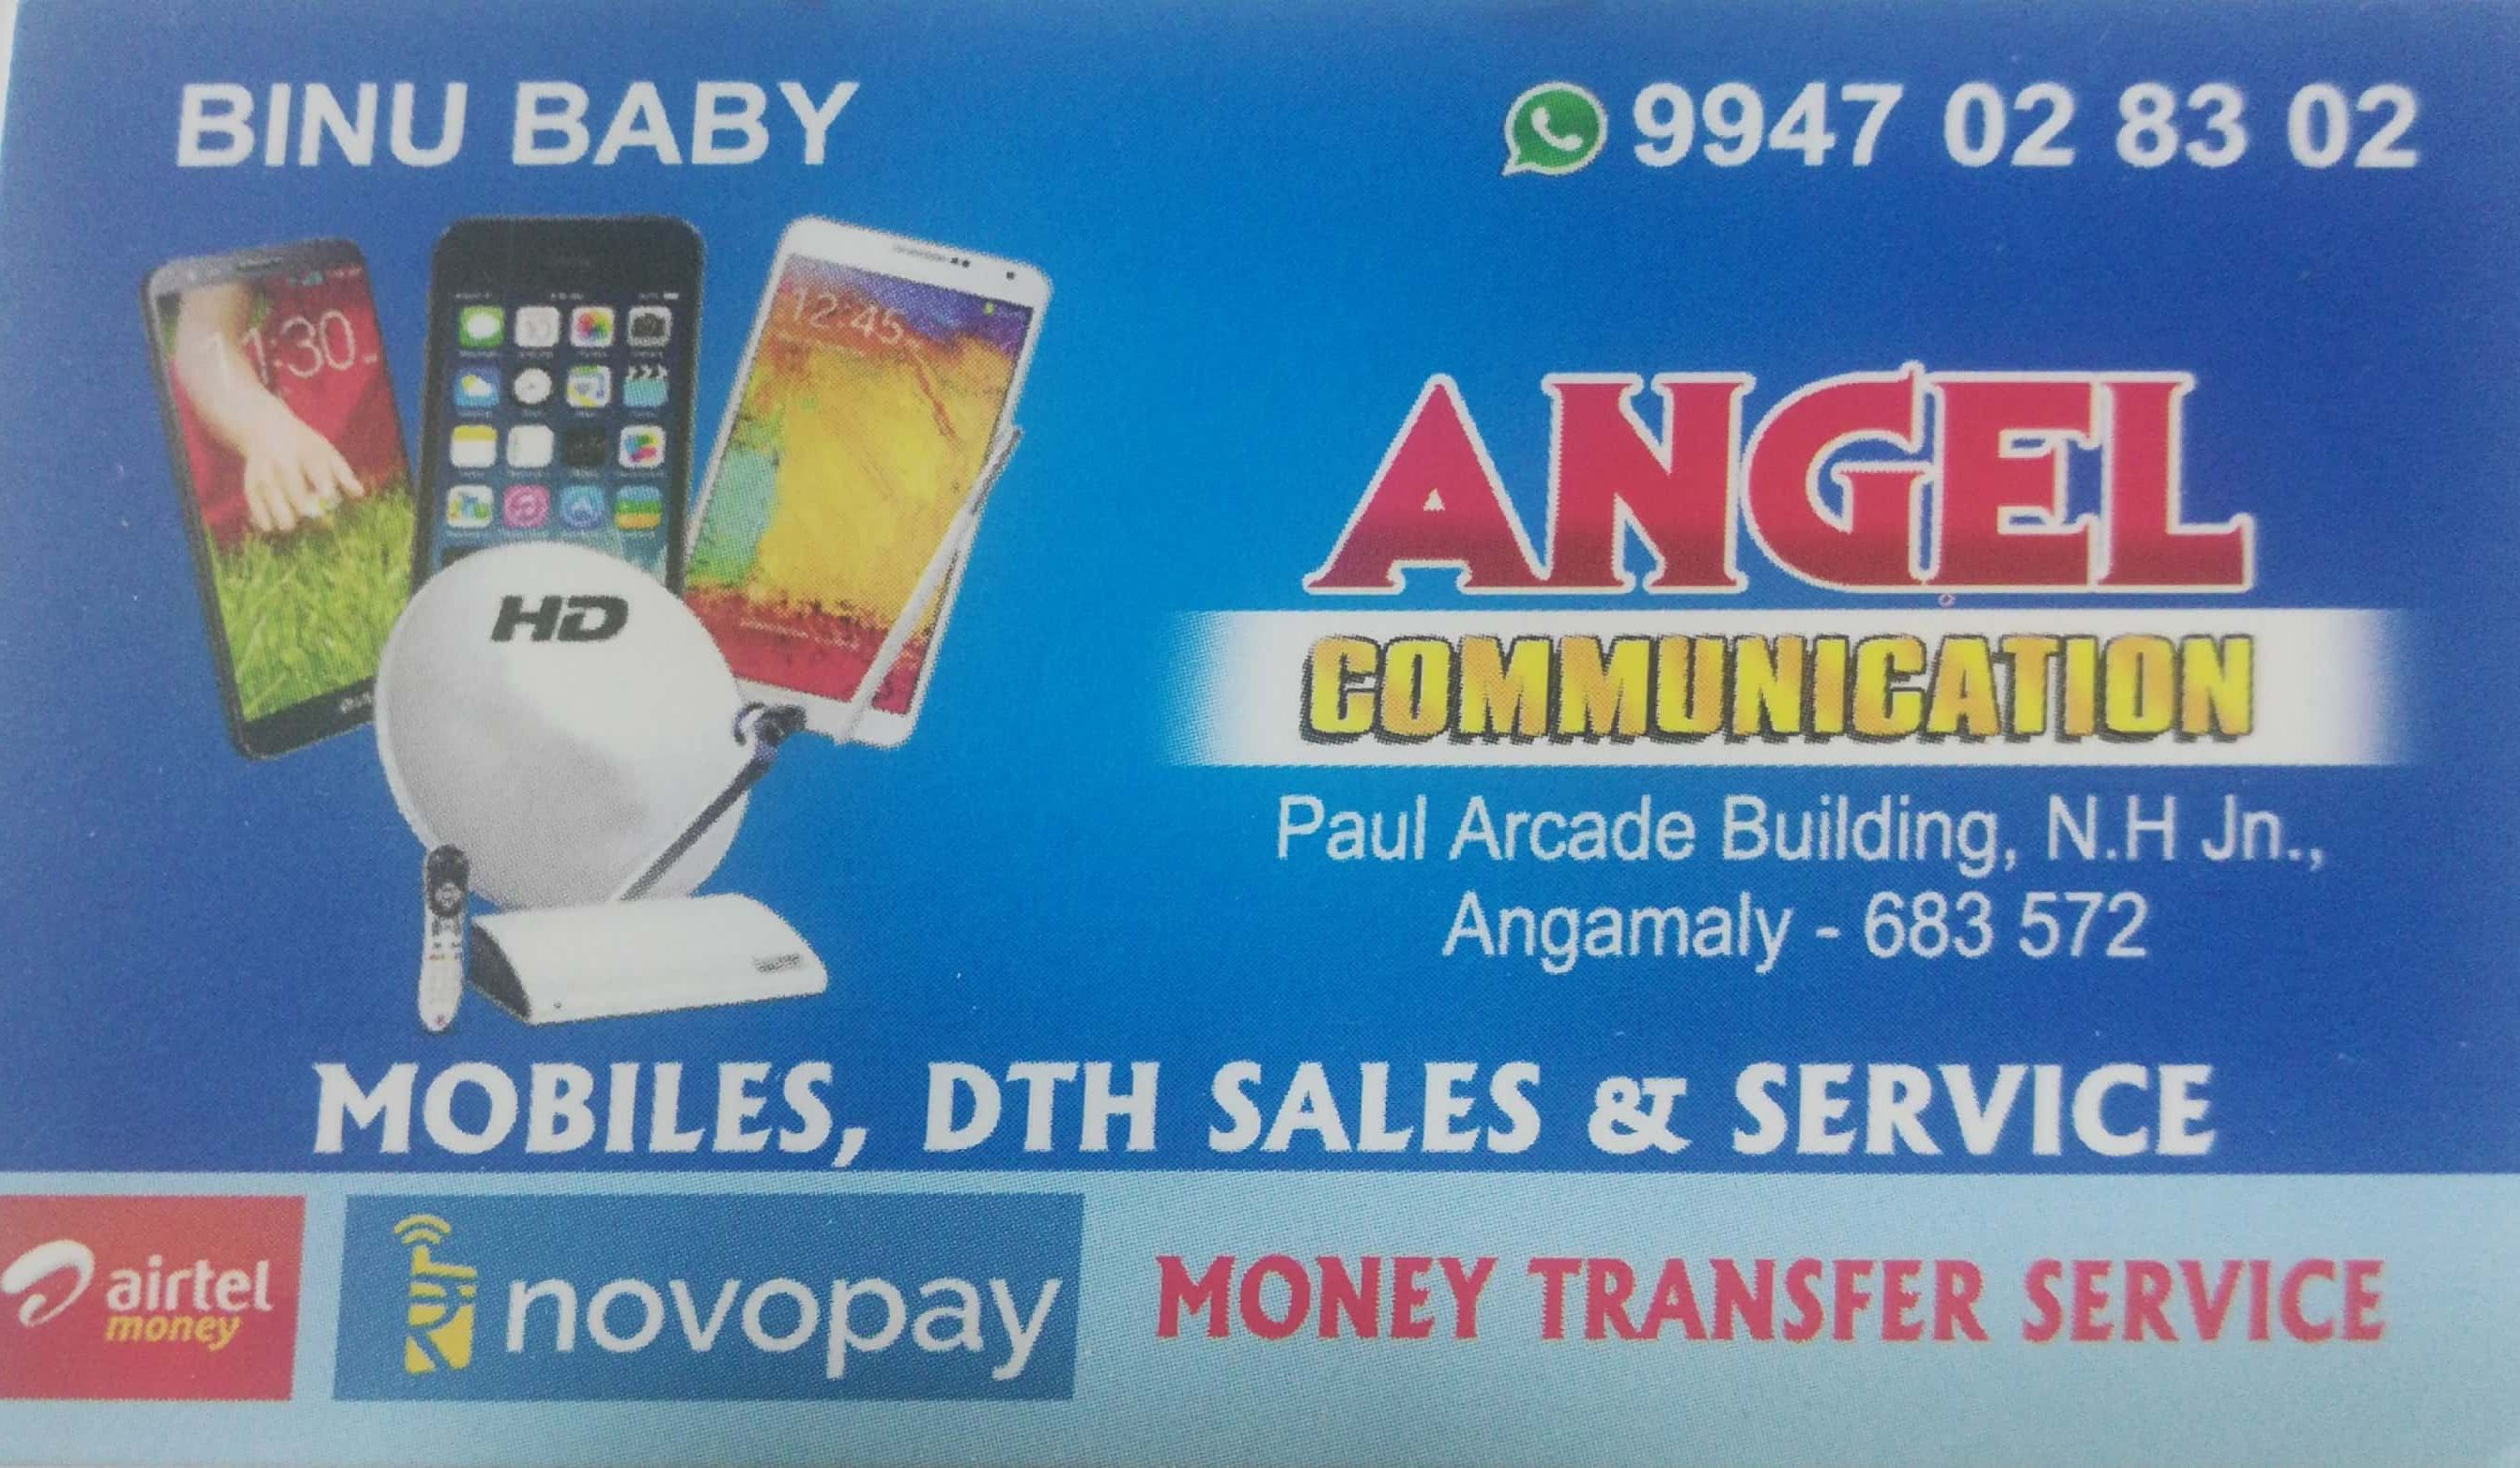 ANGEL COMMUNICATION, MOBILE PHONE ACCESSORIES,  service in Angamali, Ernakulam